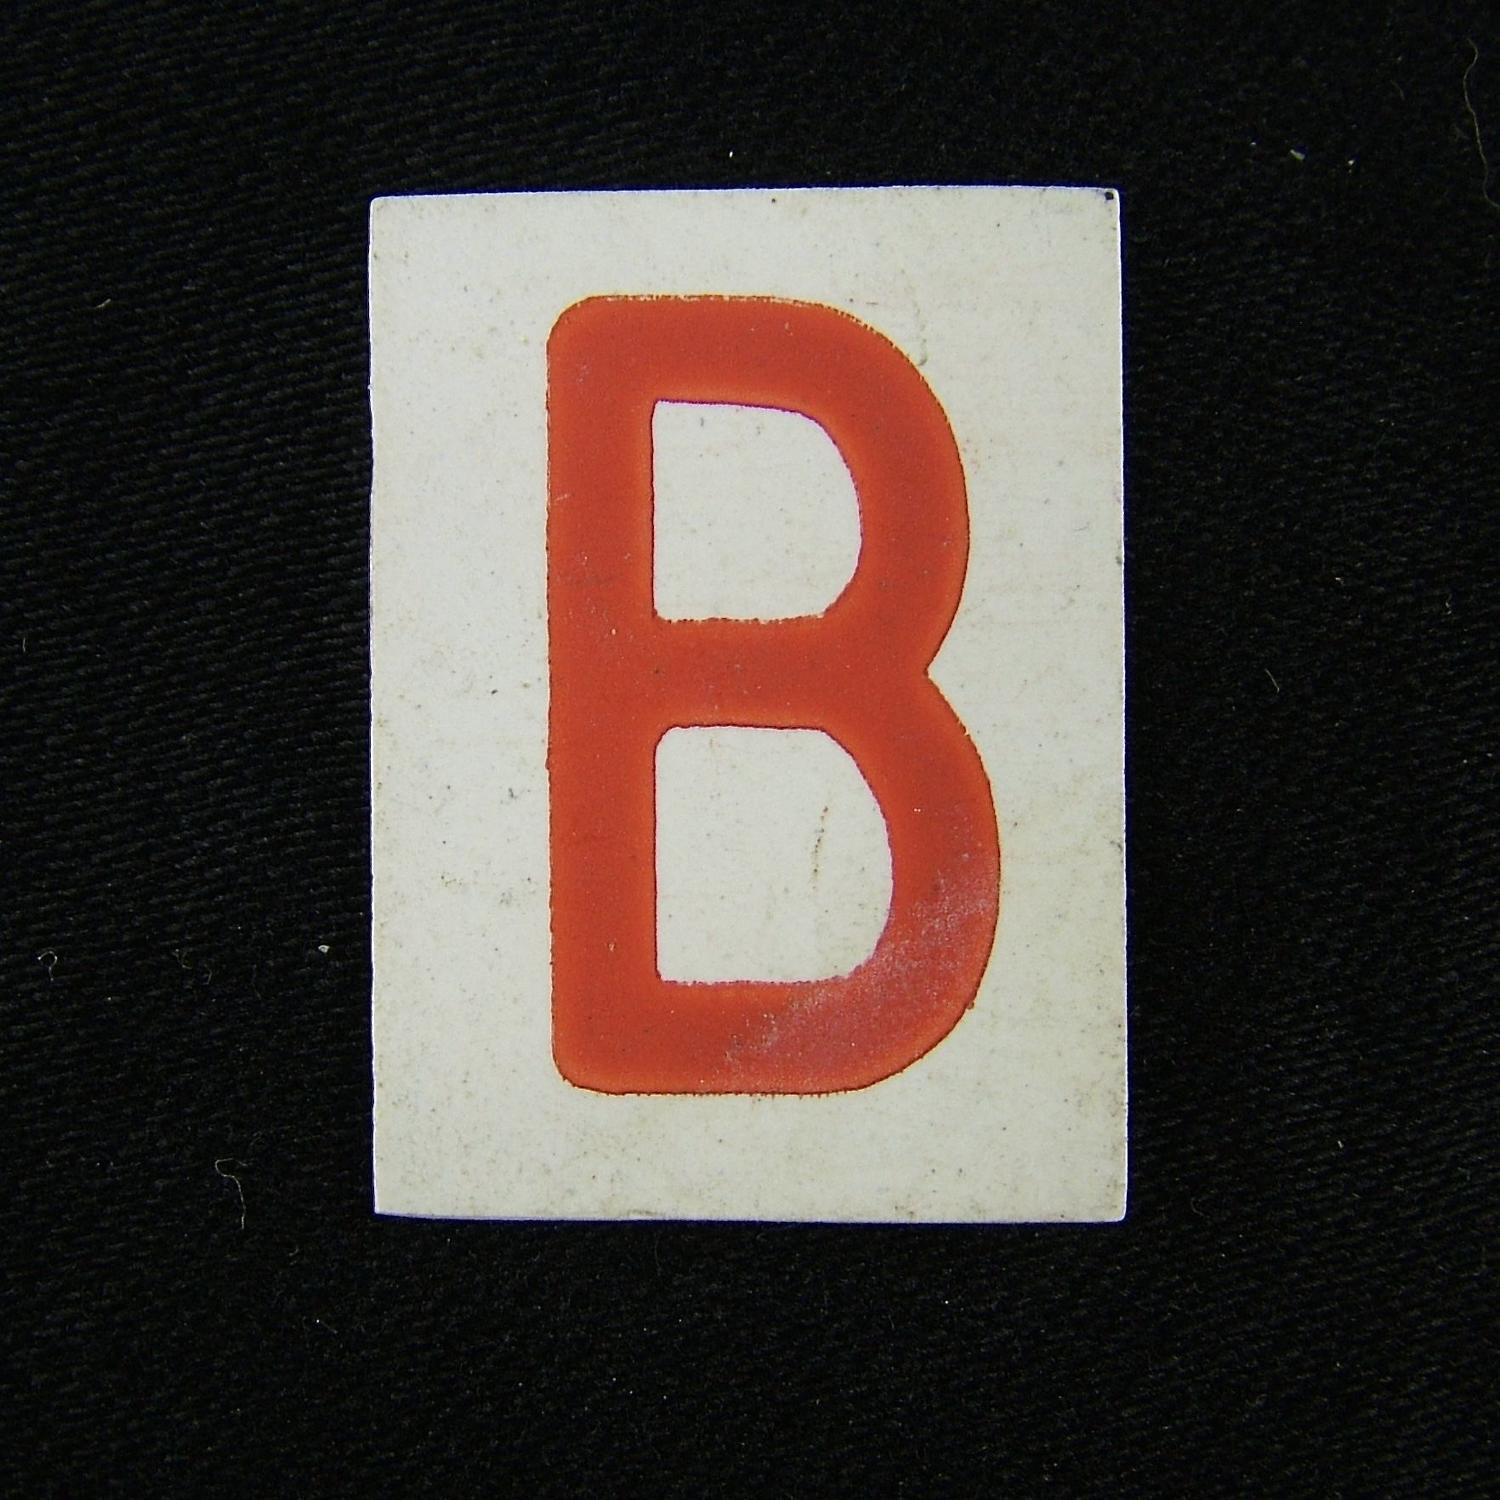 RAF operations room tile 'B'